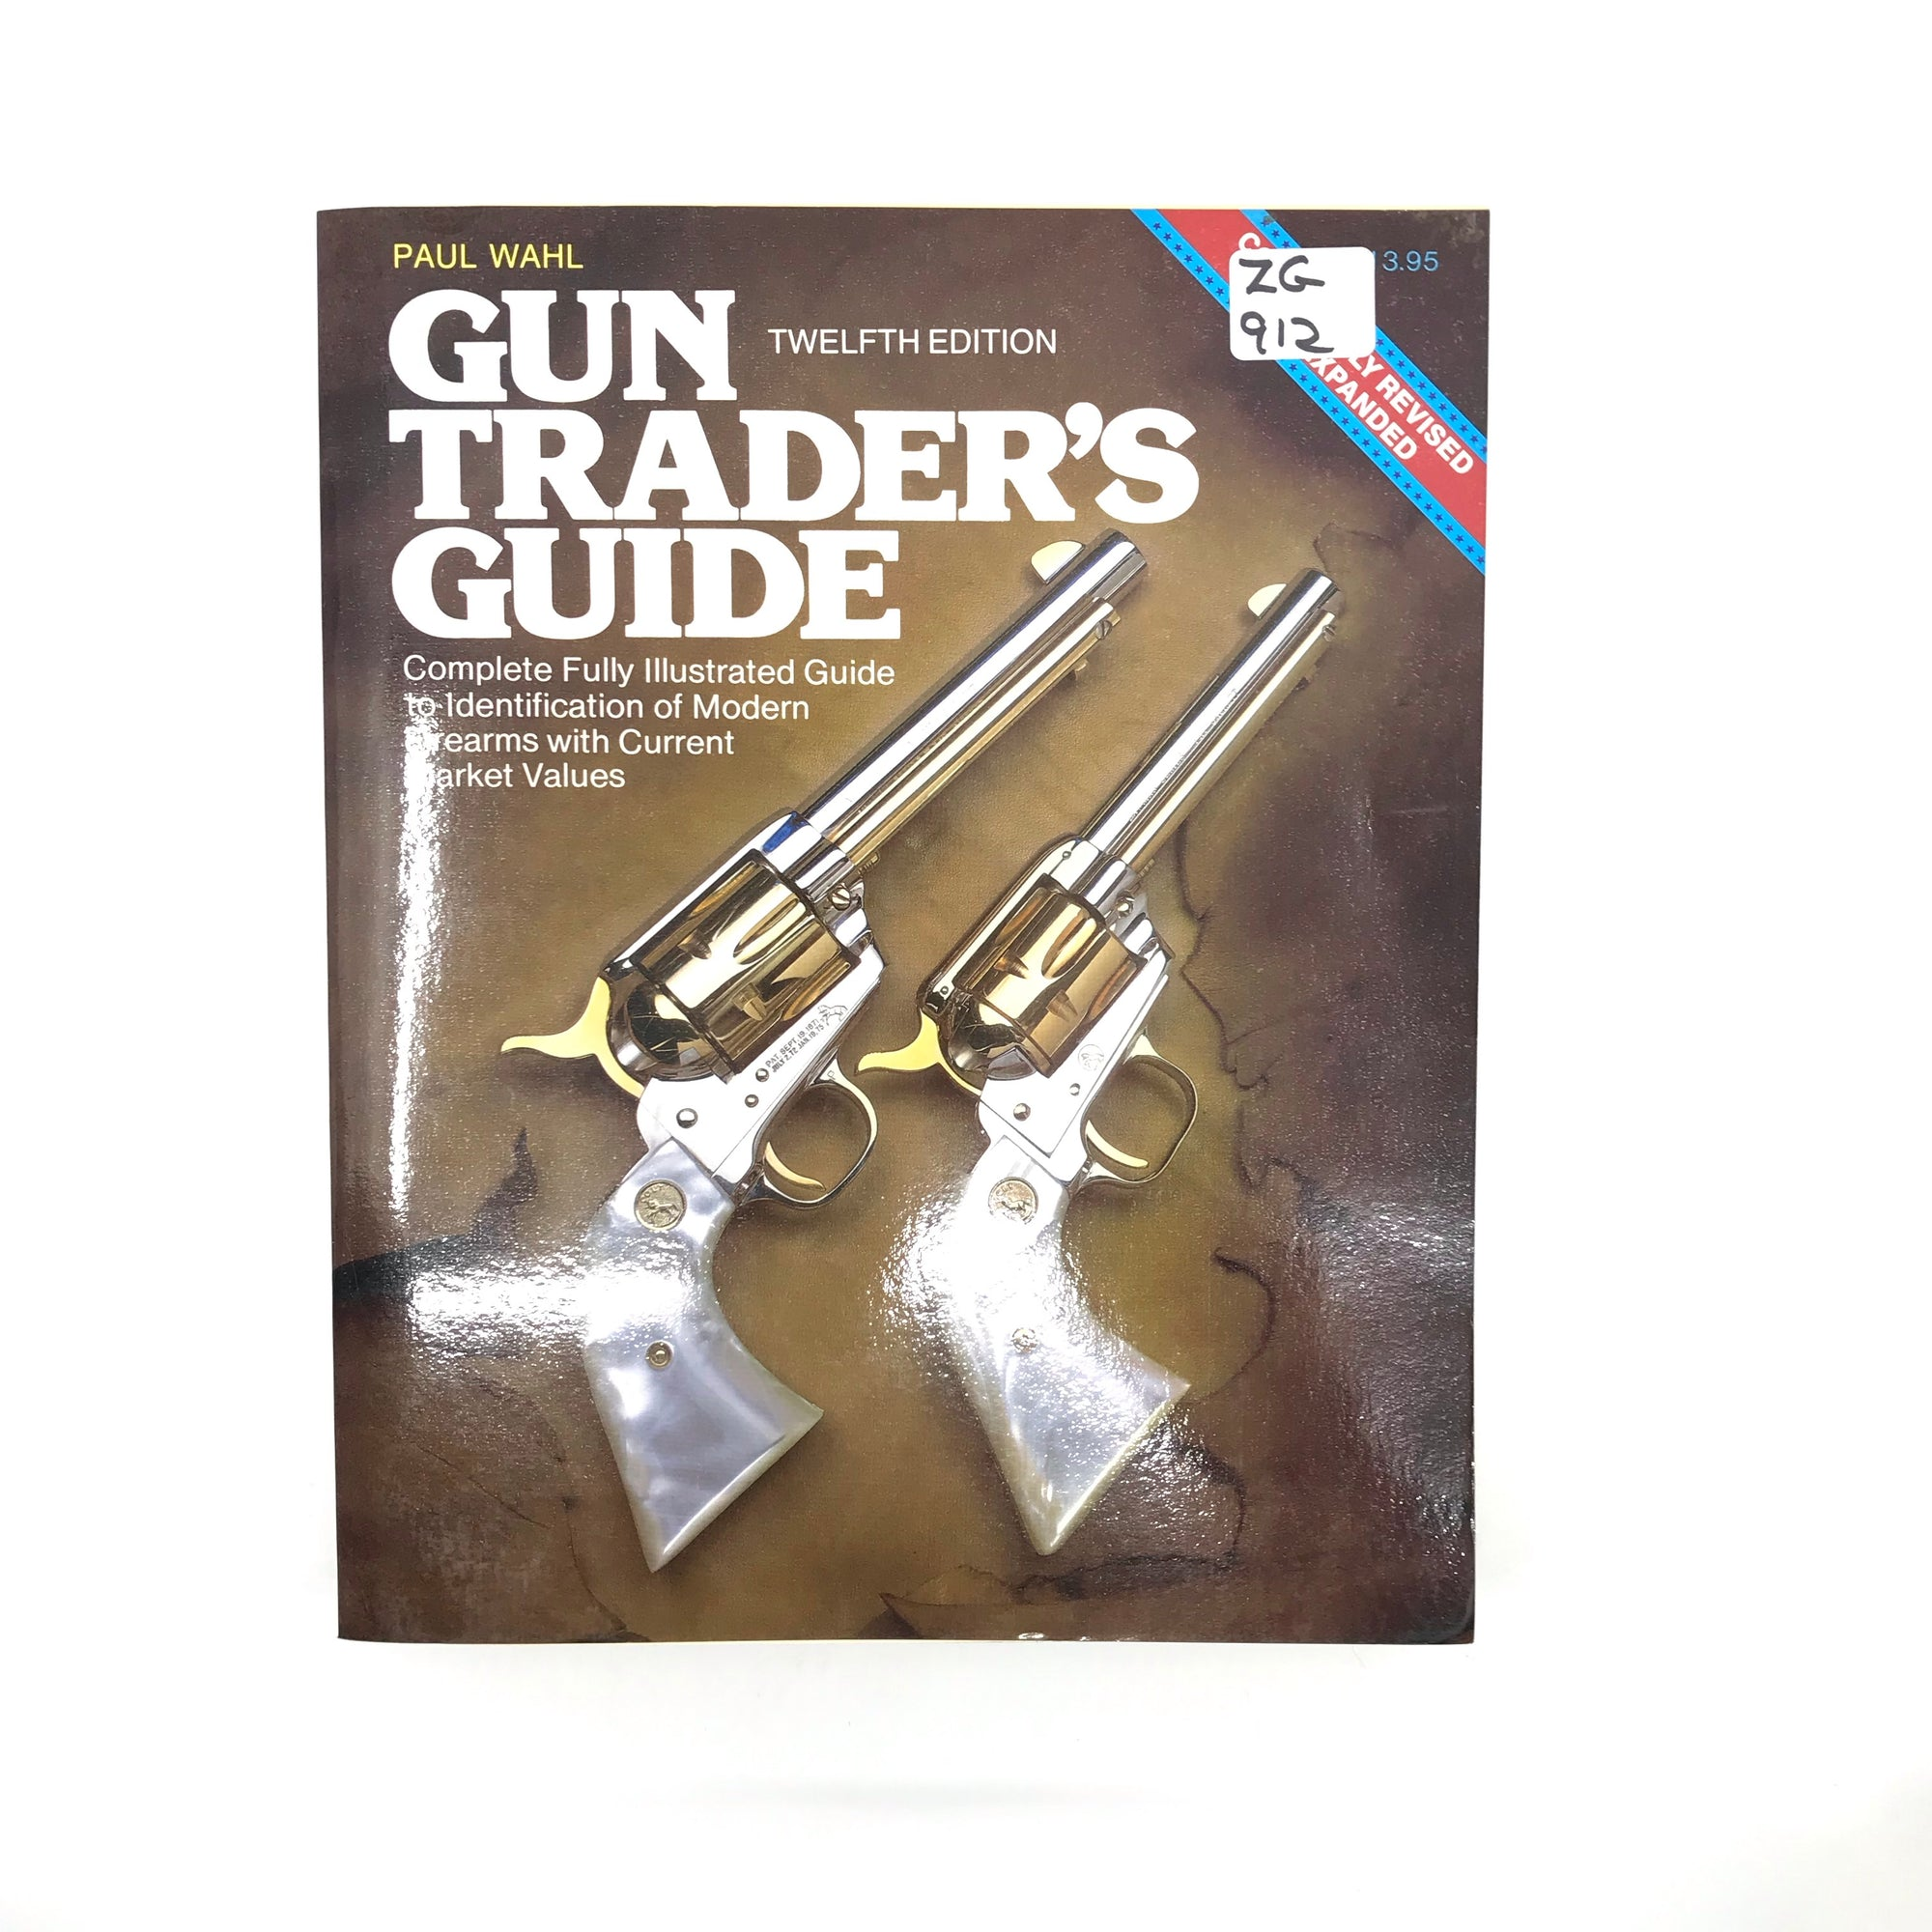 Gun Traders Guide 12th Edition Paul Wahl SB 460pgs